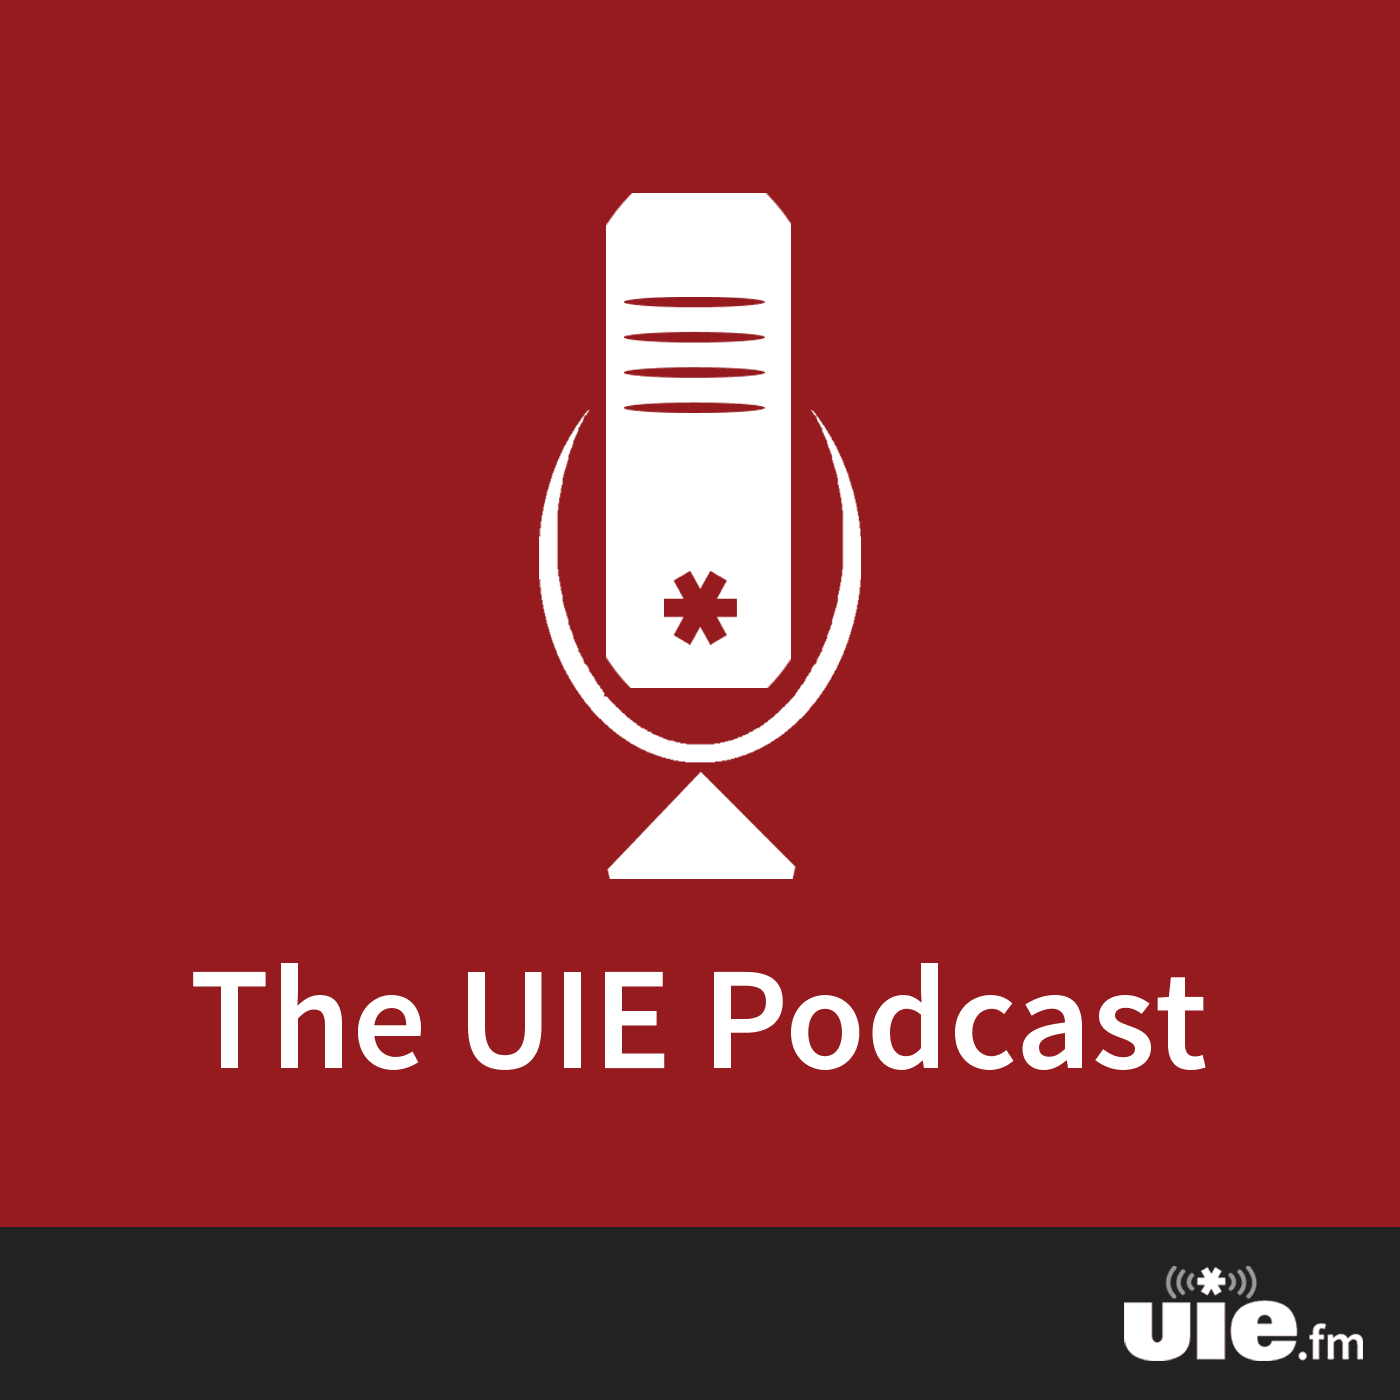 Album art of The UIE Podcast